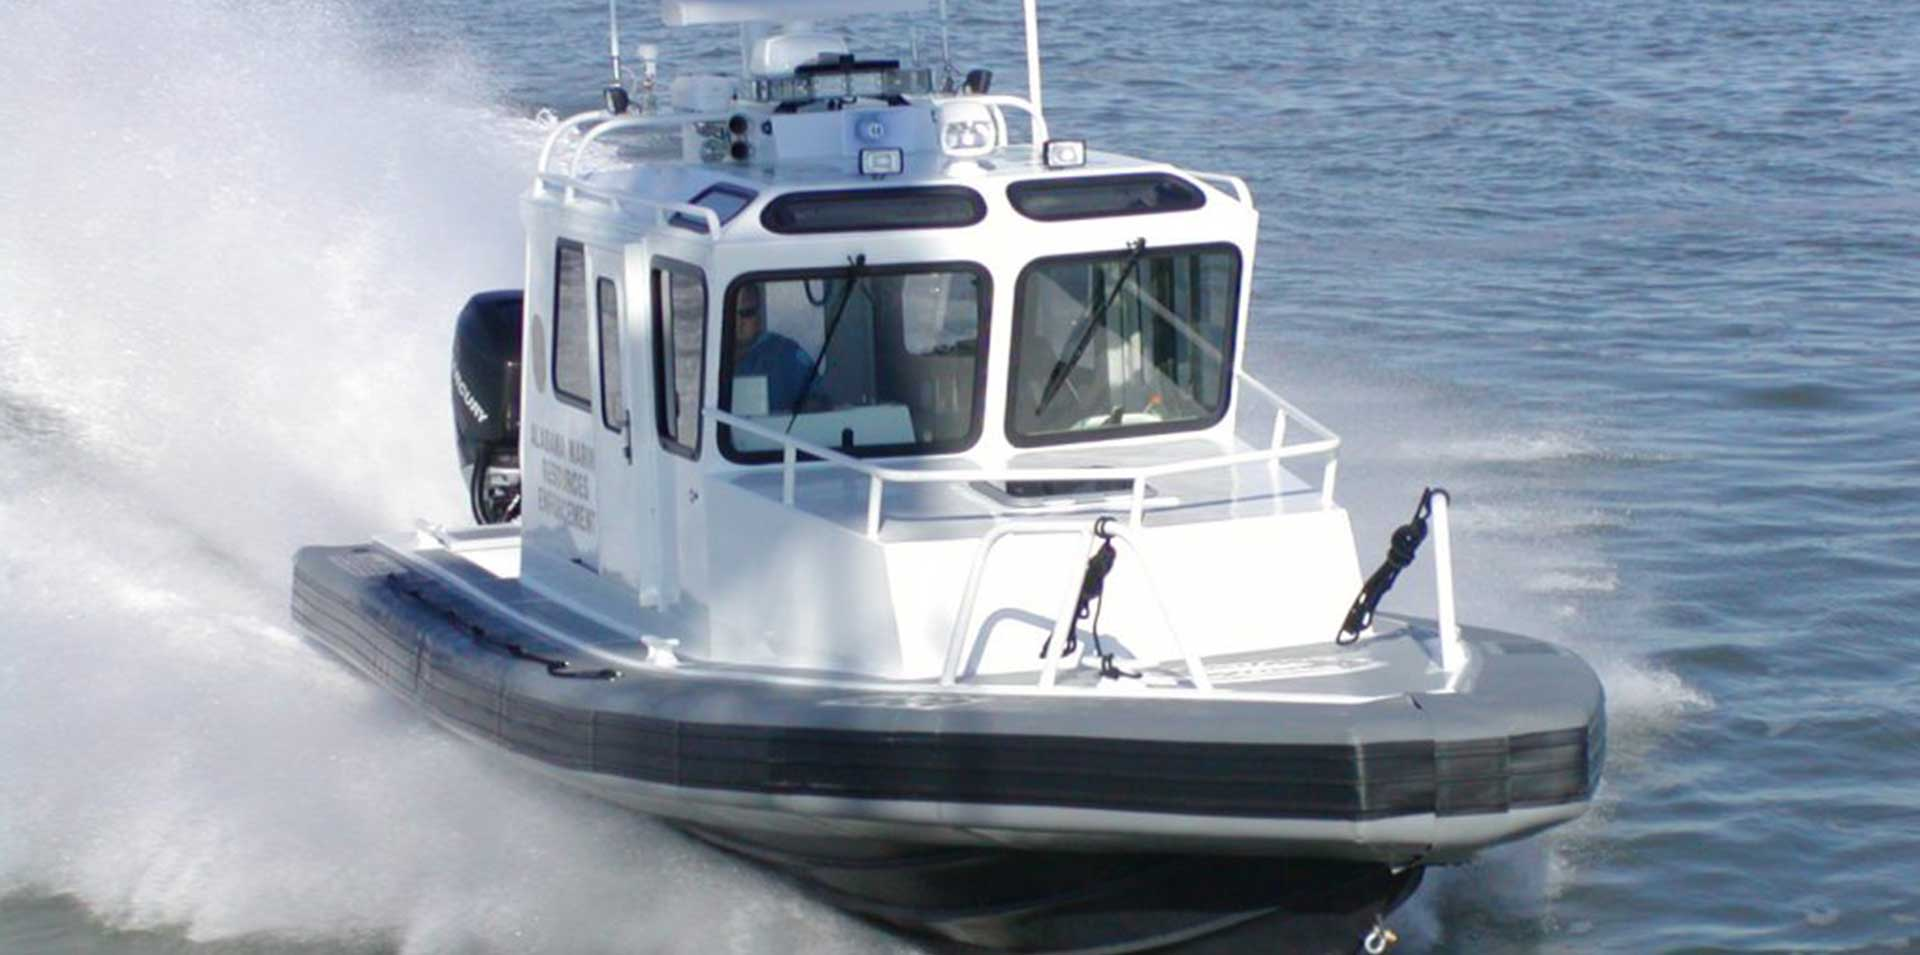 Silver Ships Ambar Series AM 1000 patrol boat with full pilothouse